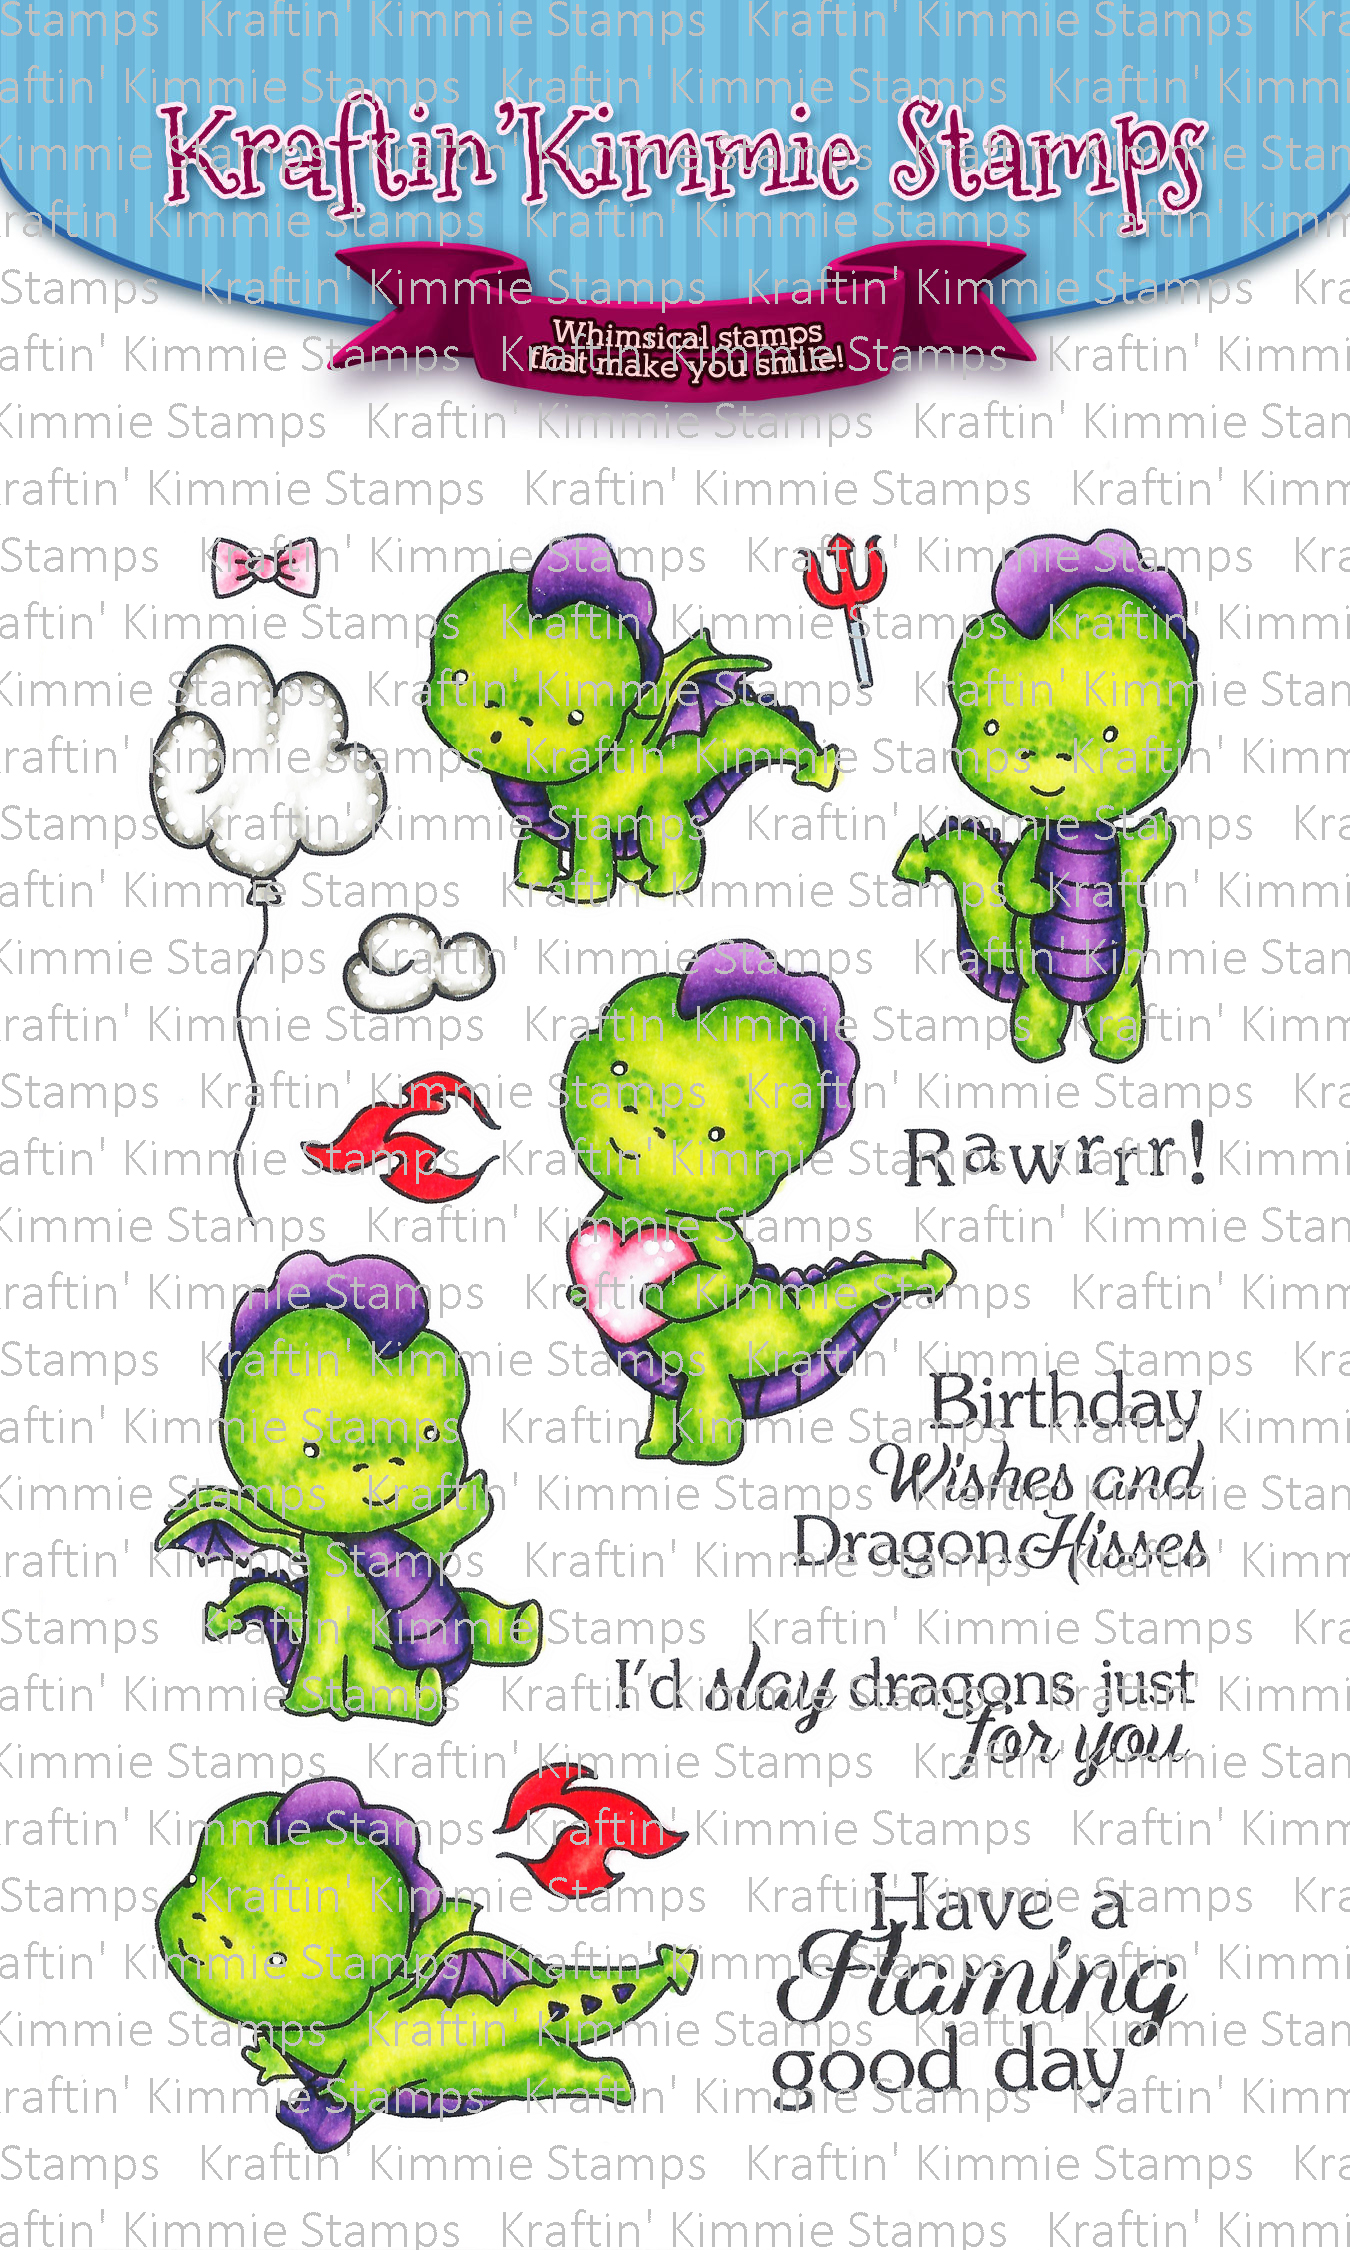 *NEW* - Kraftin' Kimmie - Darling Dragons